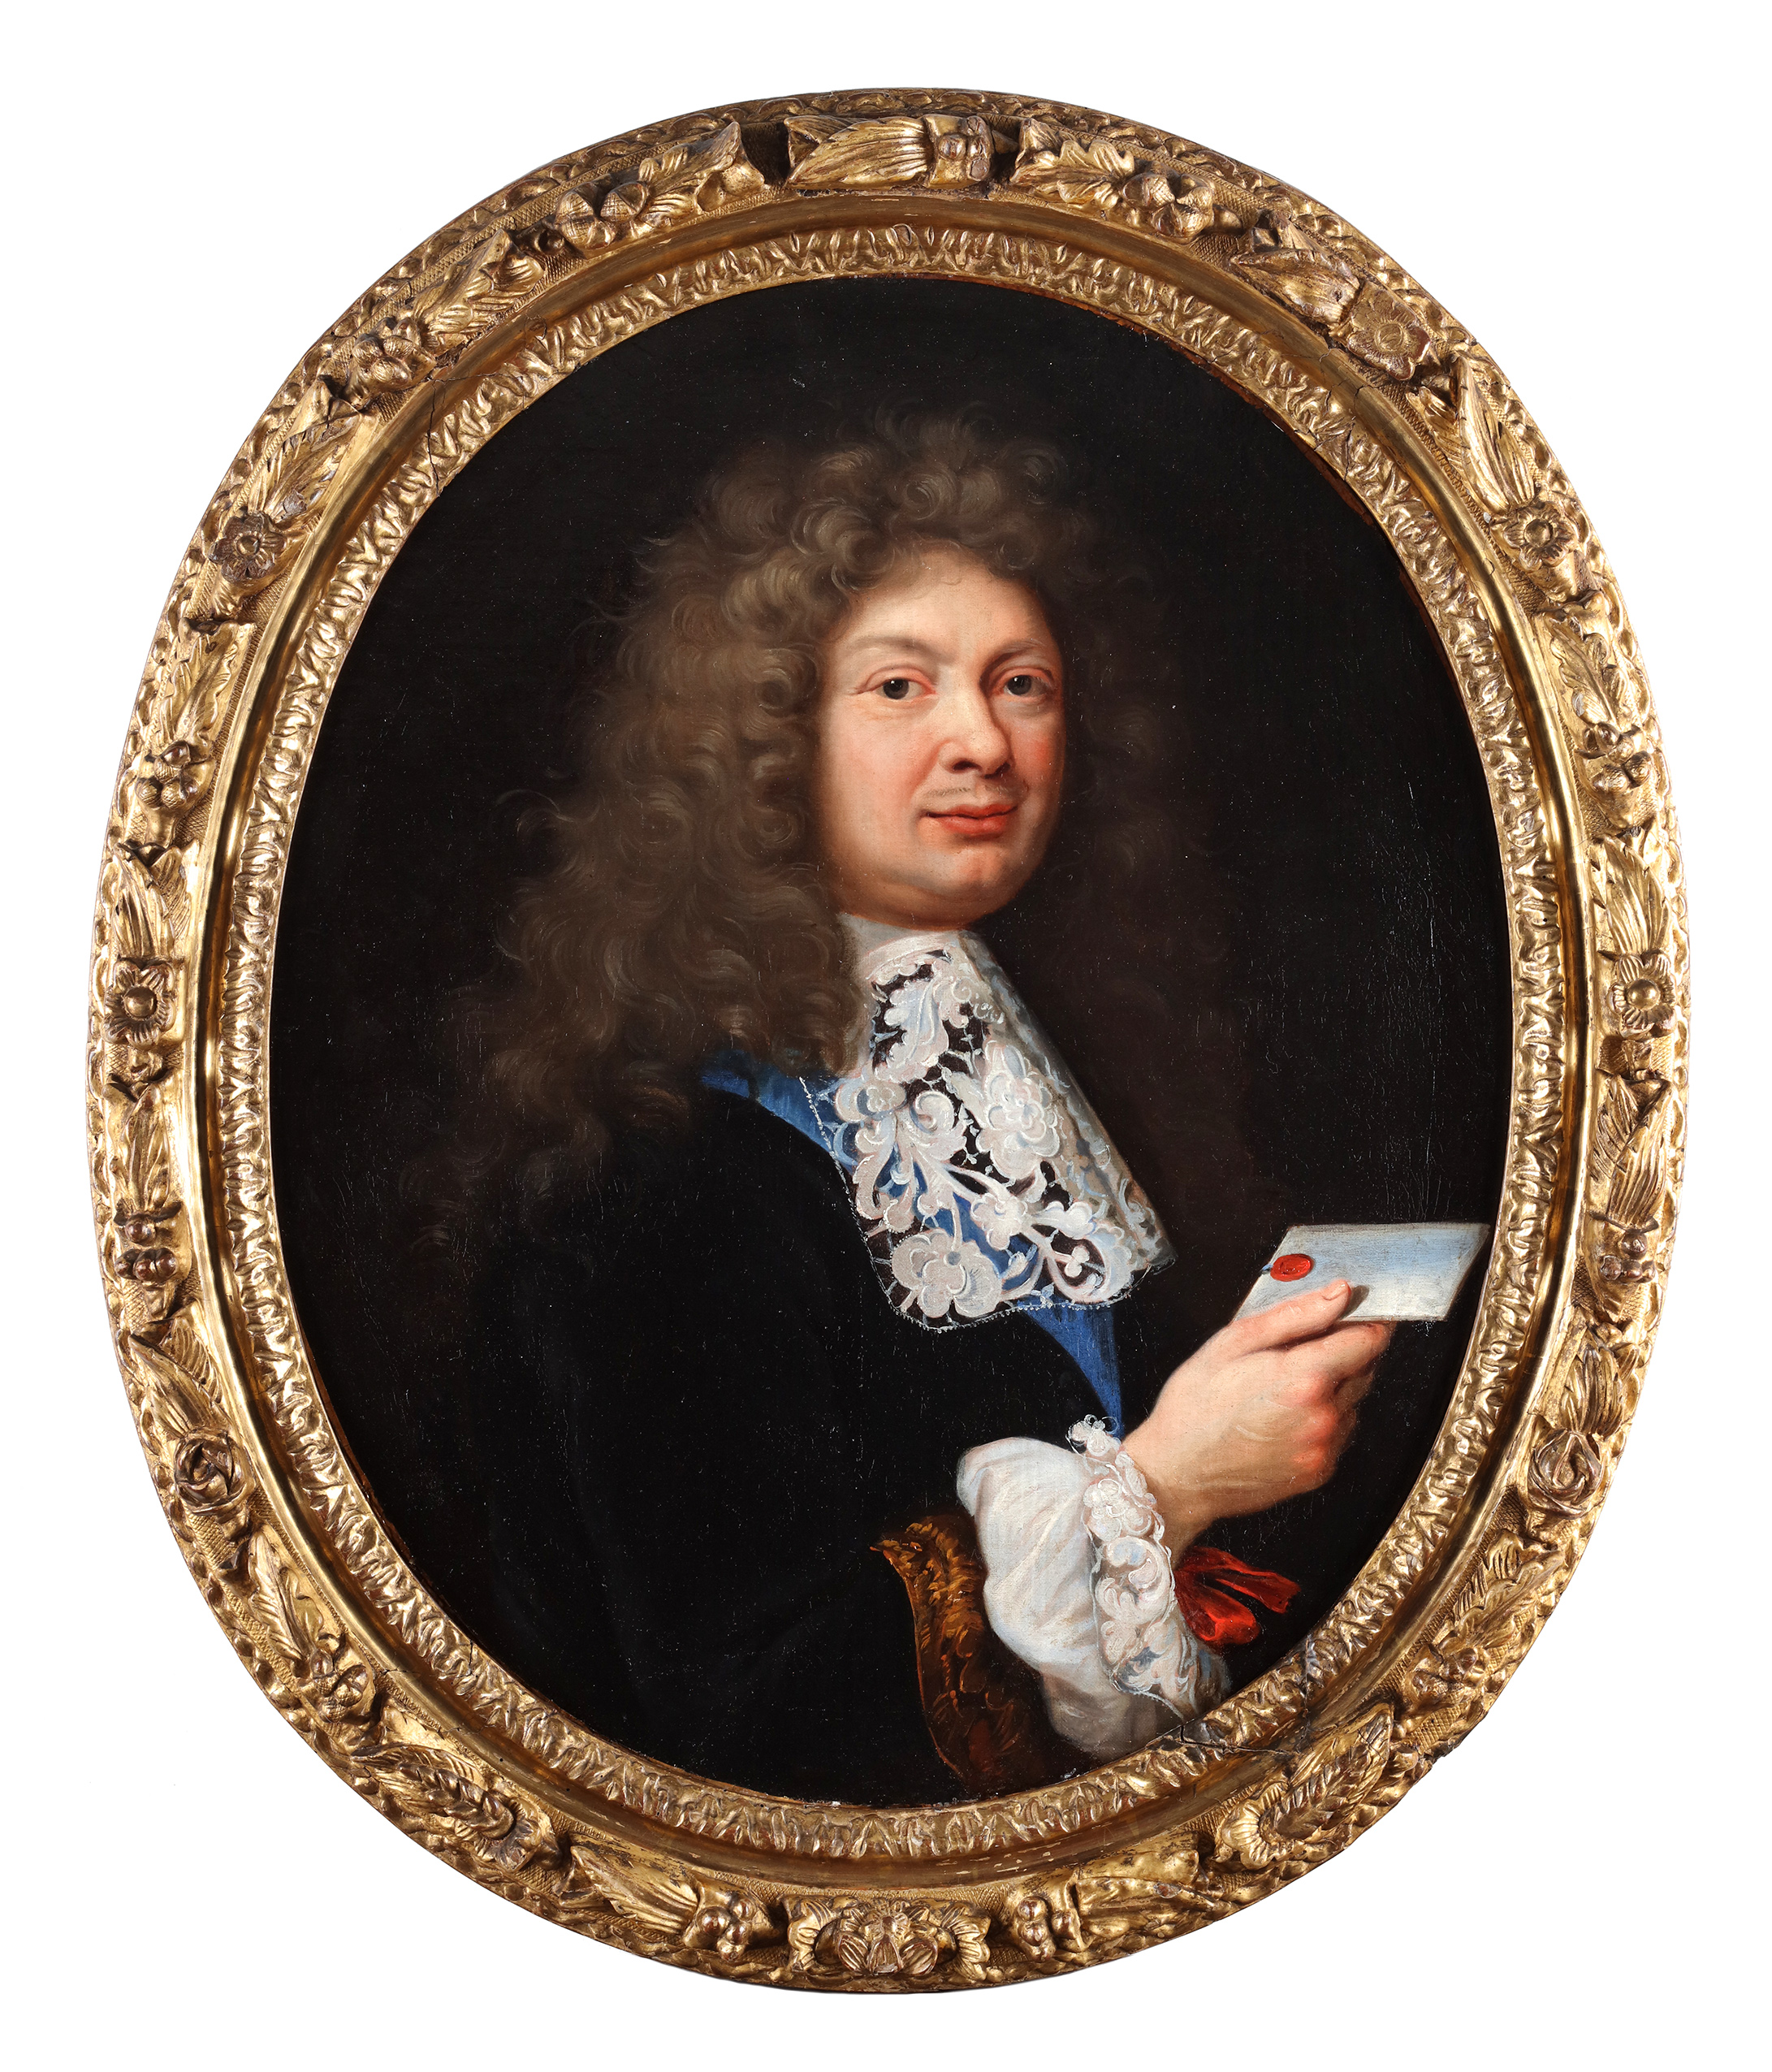 Portrait of a man holding a letter and a portrait of a lady in a blue dress